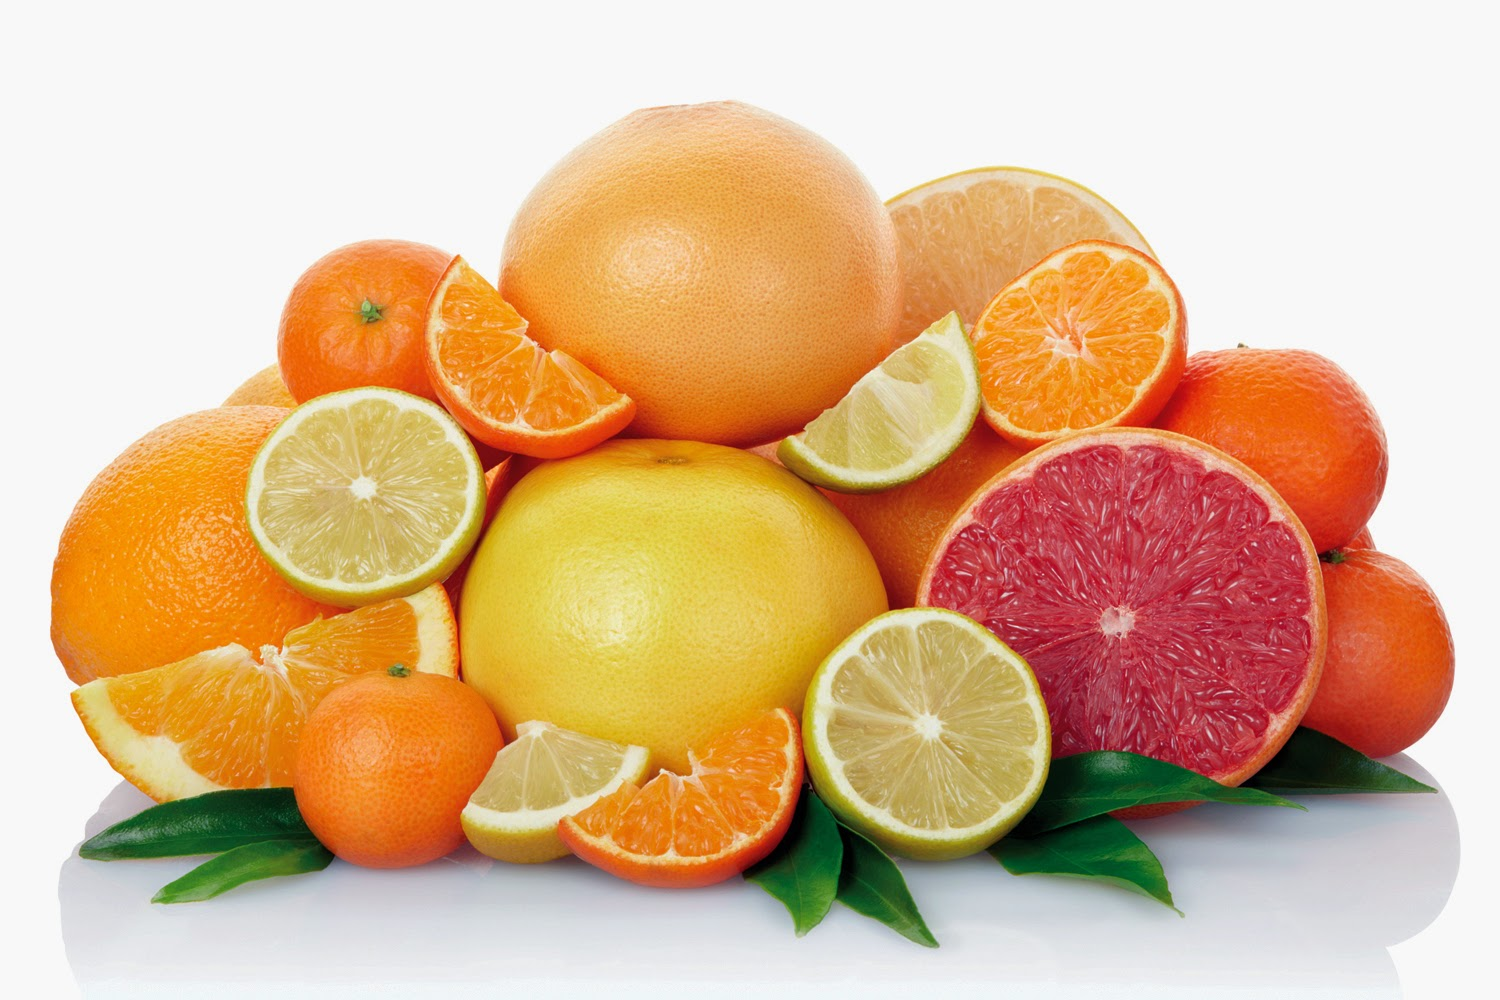 Reduce Your Risk of Stroke and Drop Pounds with Citrus Fruits